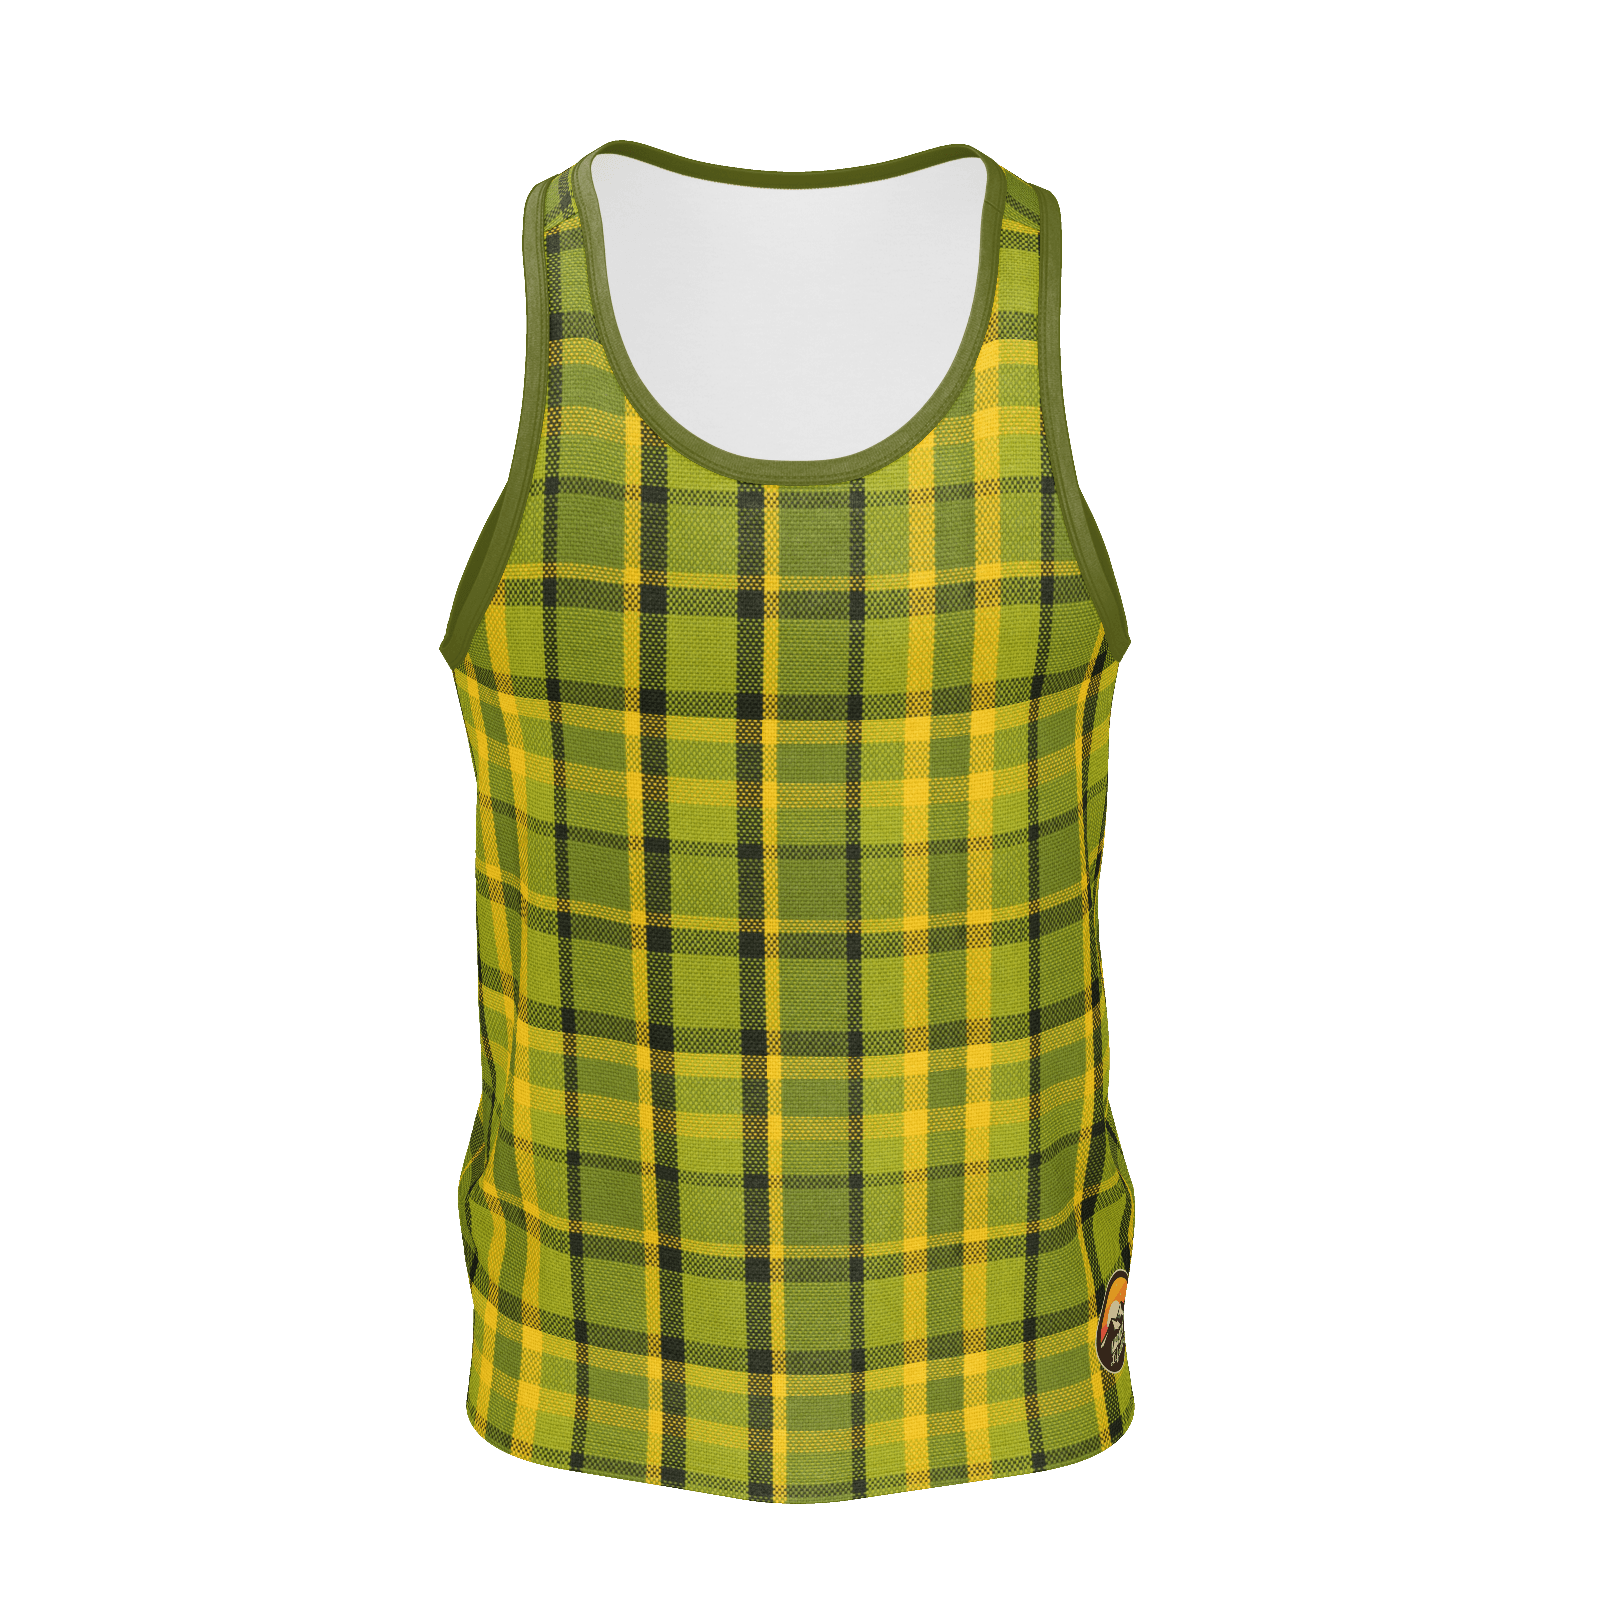 Retro Green Plaid Men's Tank Top